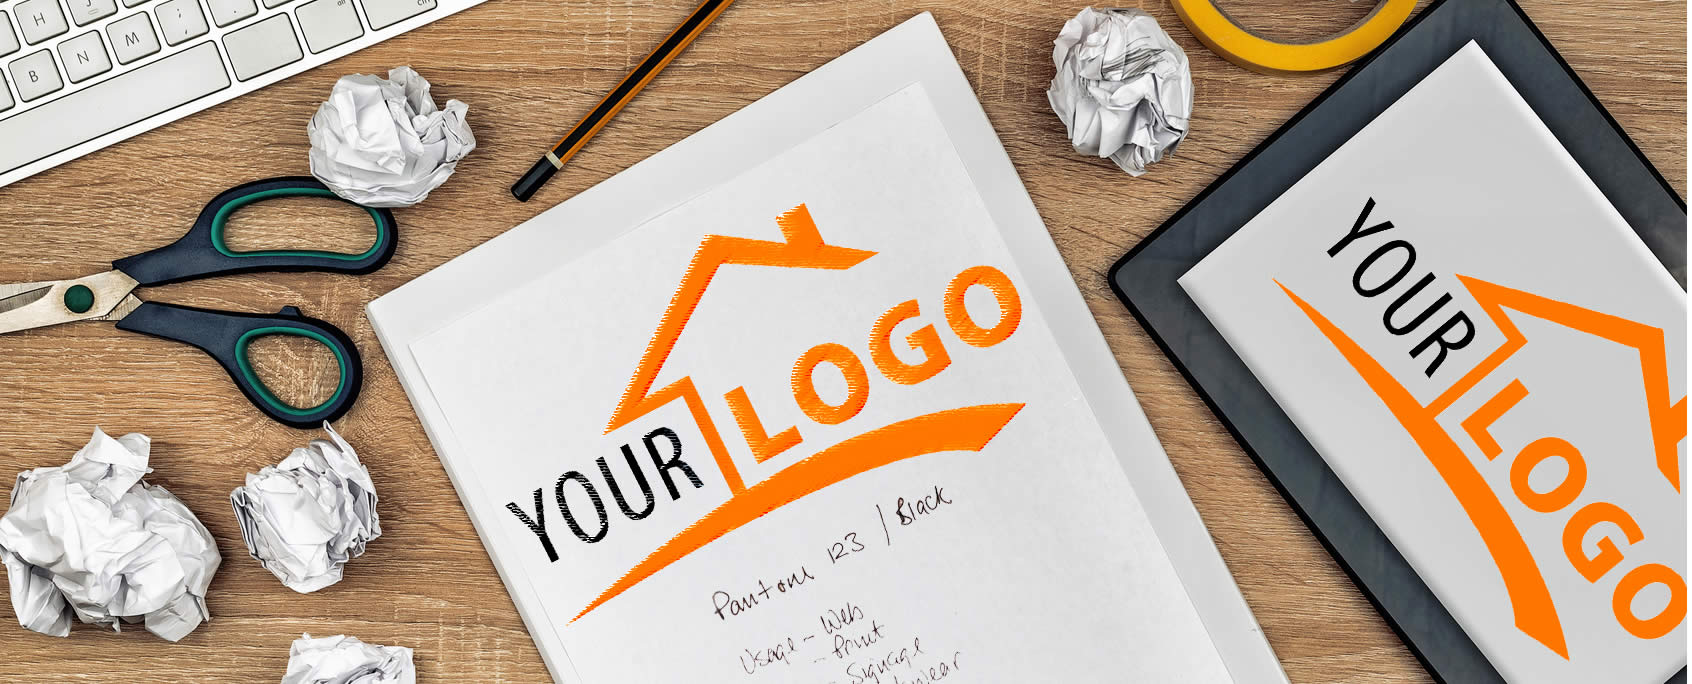 your logo design for business websites and printing